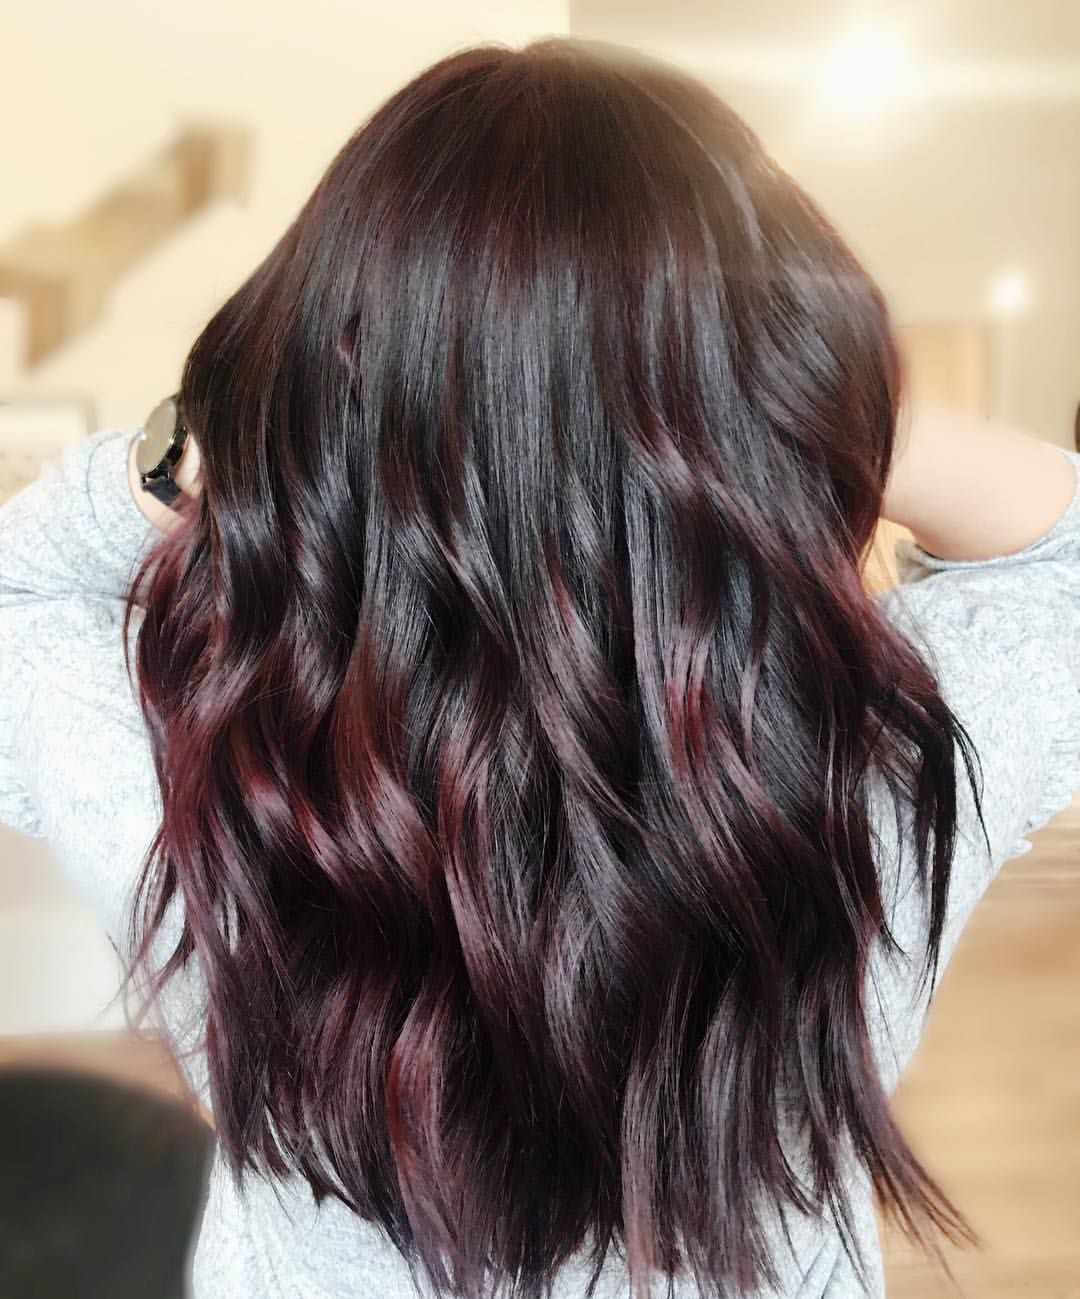 """76 Likes, 5 Comments - Ashley Ballou✂️ (@hairbyashleyballou) on Instagram: """" Hair like hers makes me so envious of the dark side! I did @redken5thave Color Fusion half 3Vr…"""""""